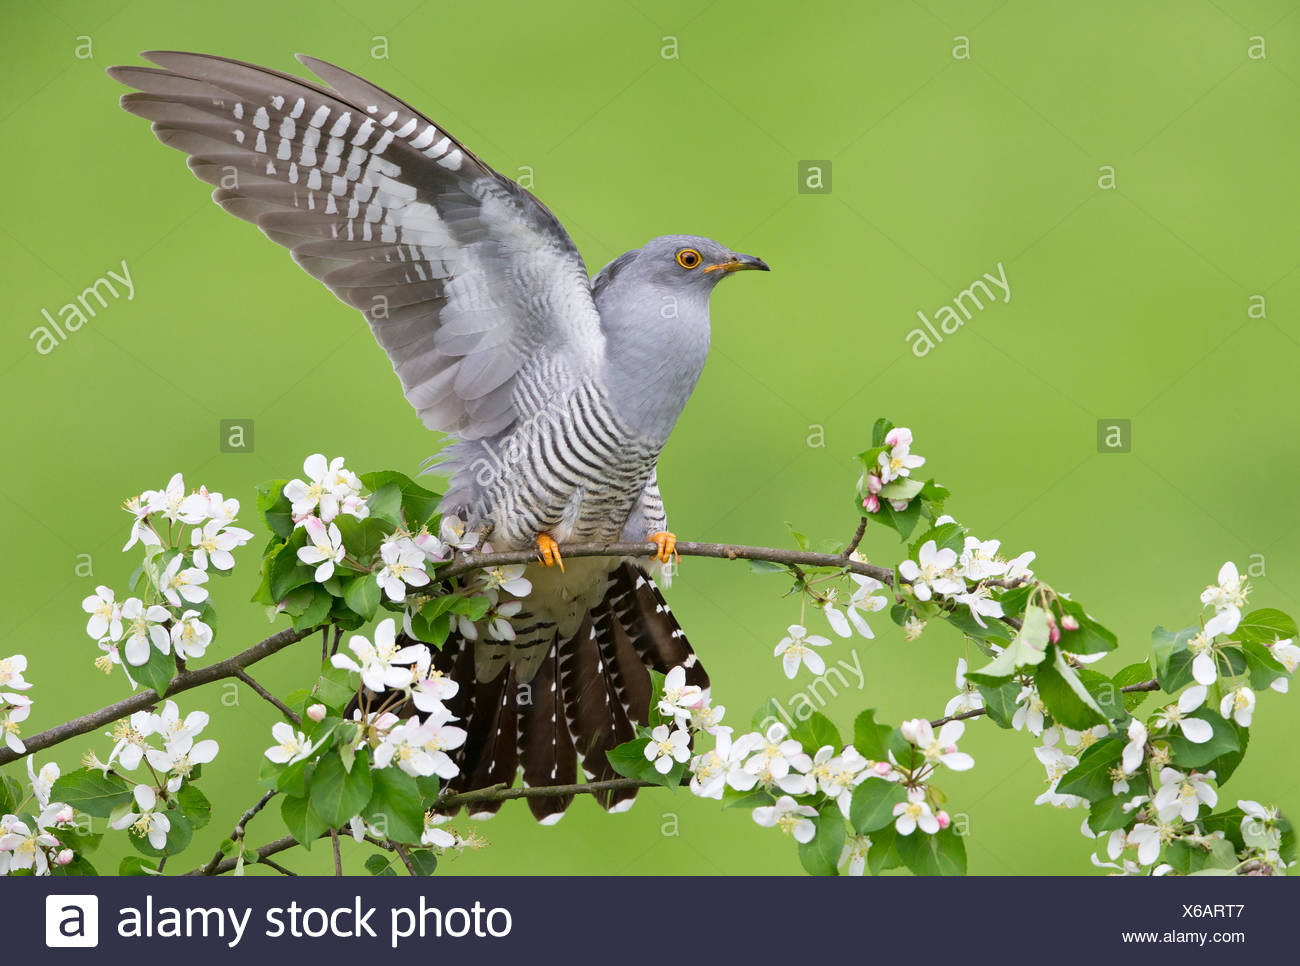 Cuckoo perched in a blooming tree at spring - GB - Stock Image